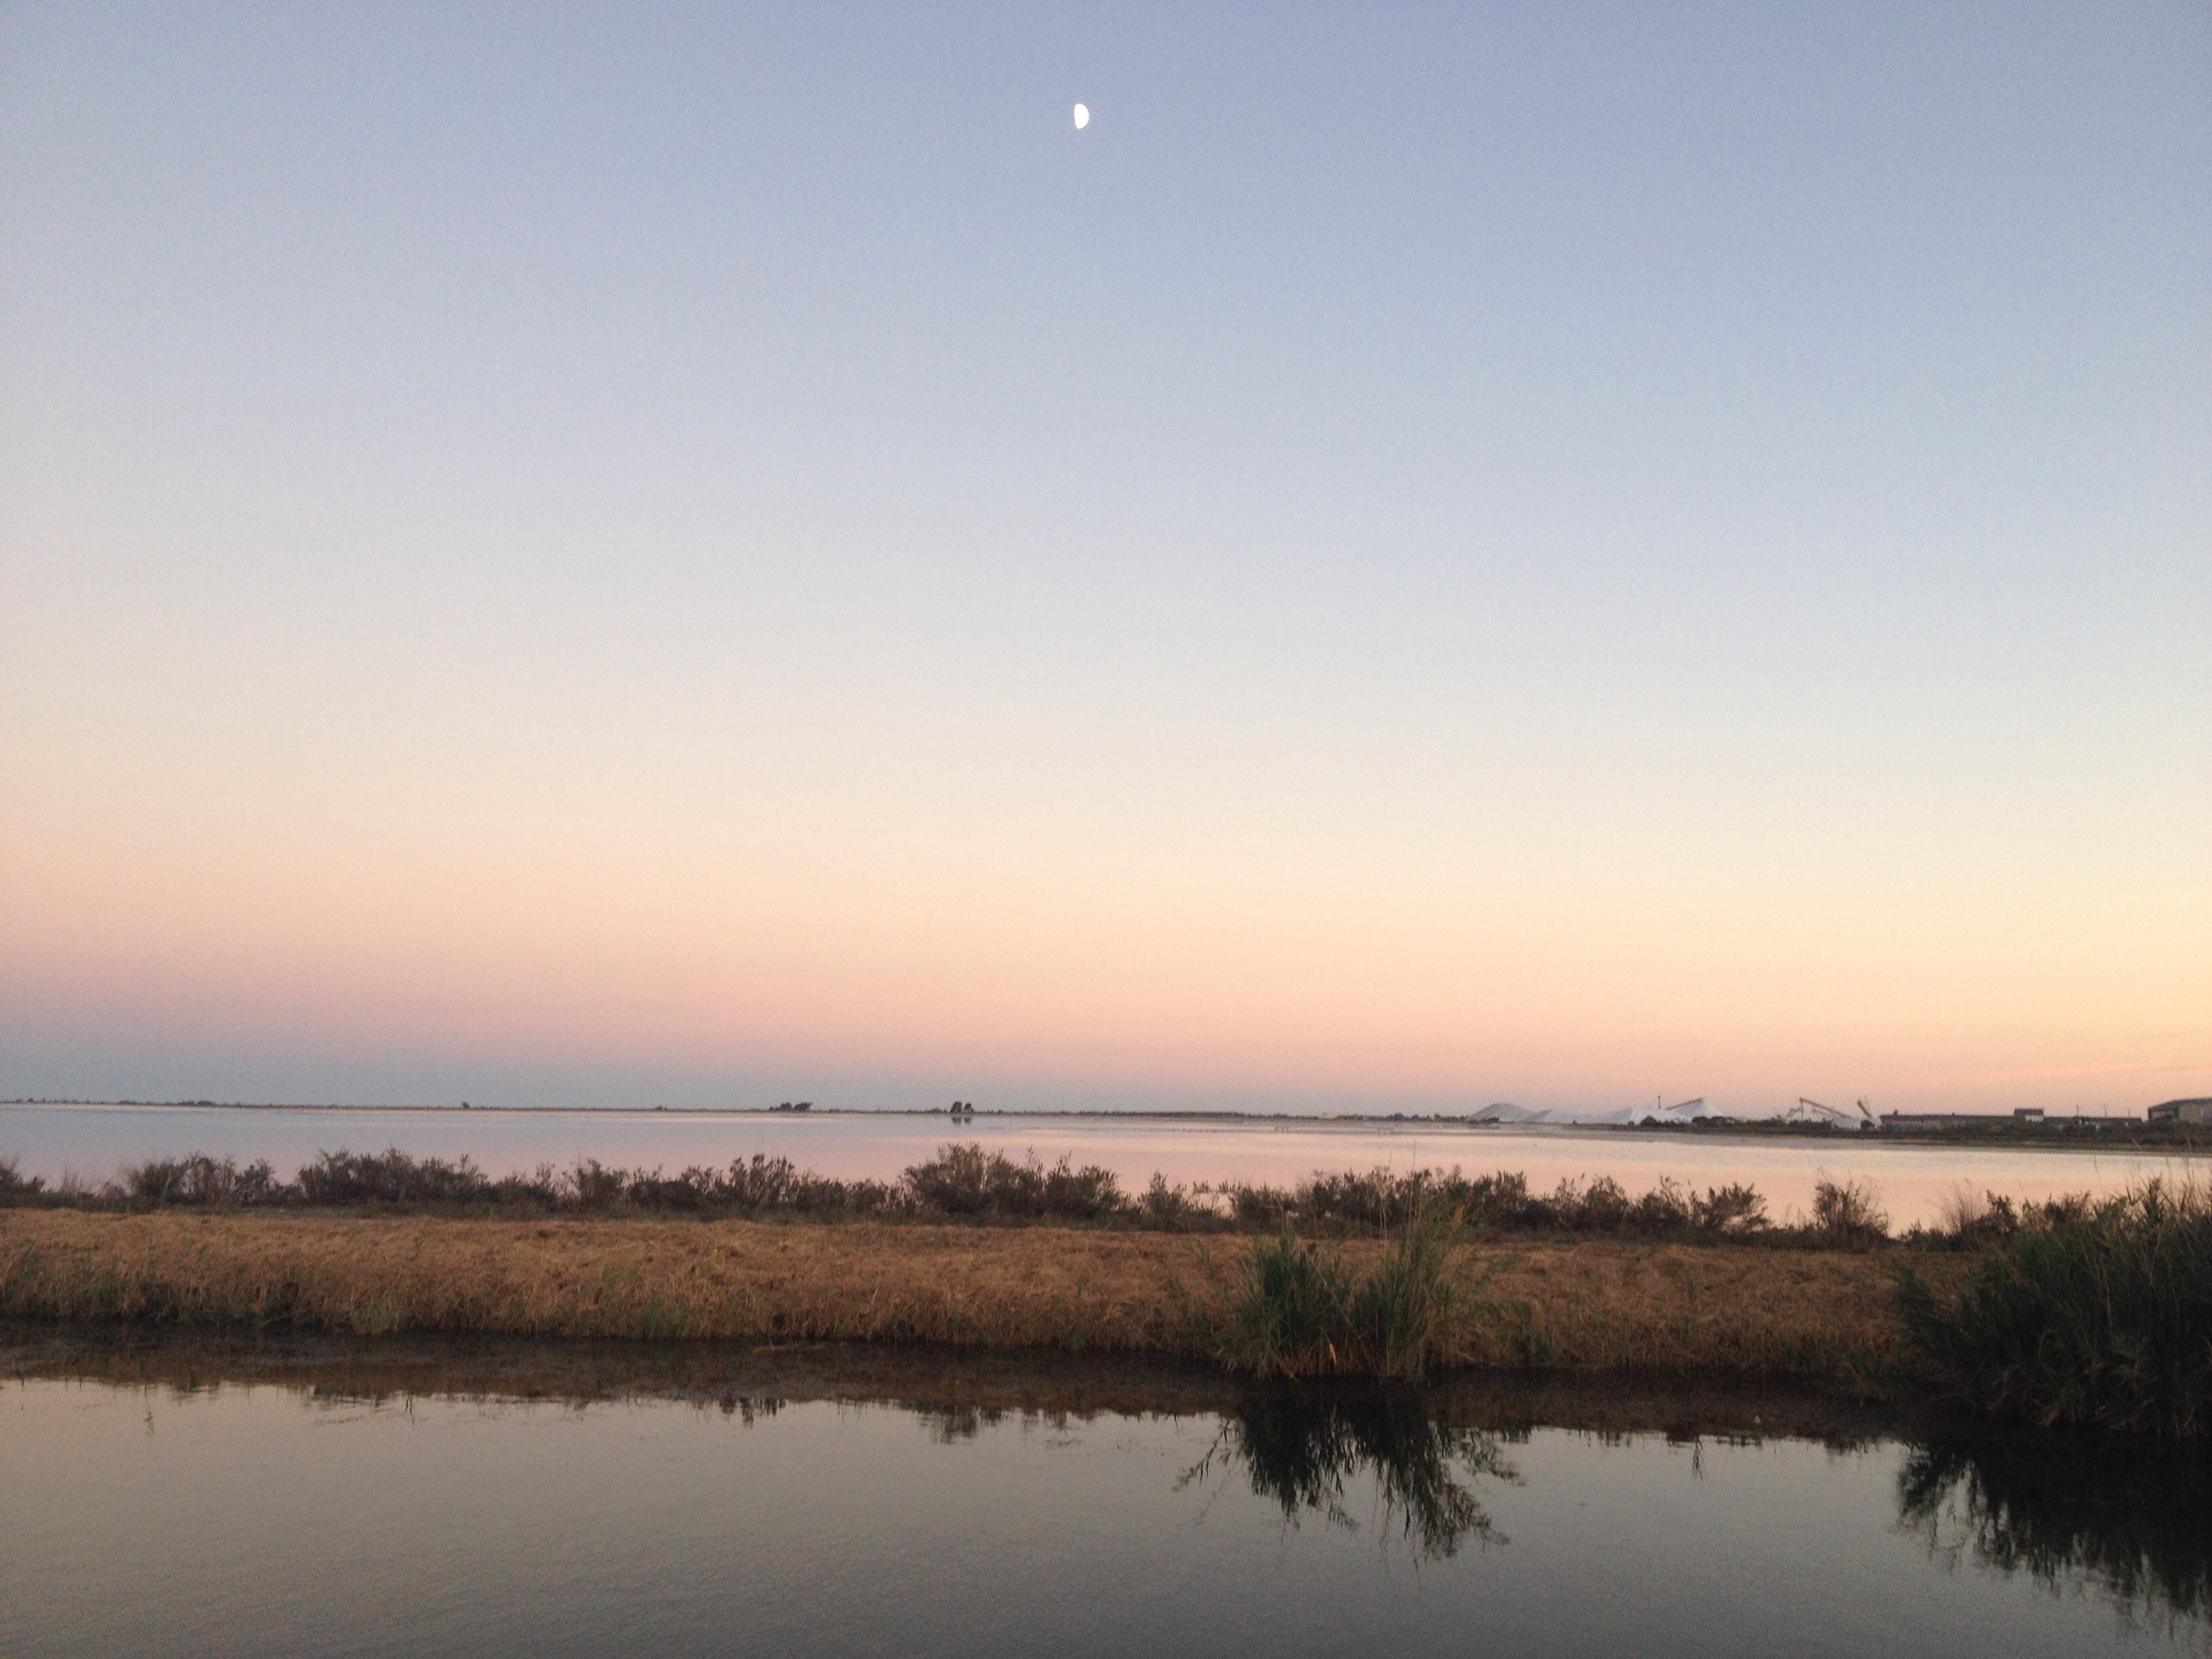 Tramonto in Camargue.